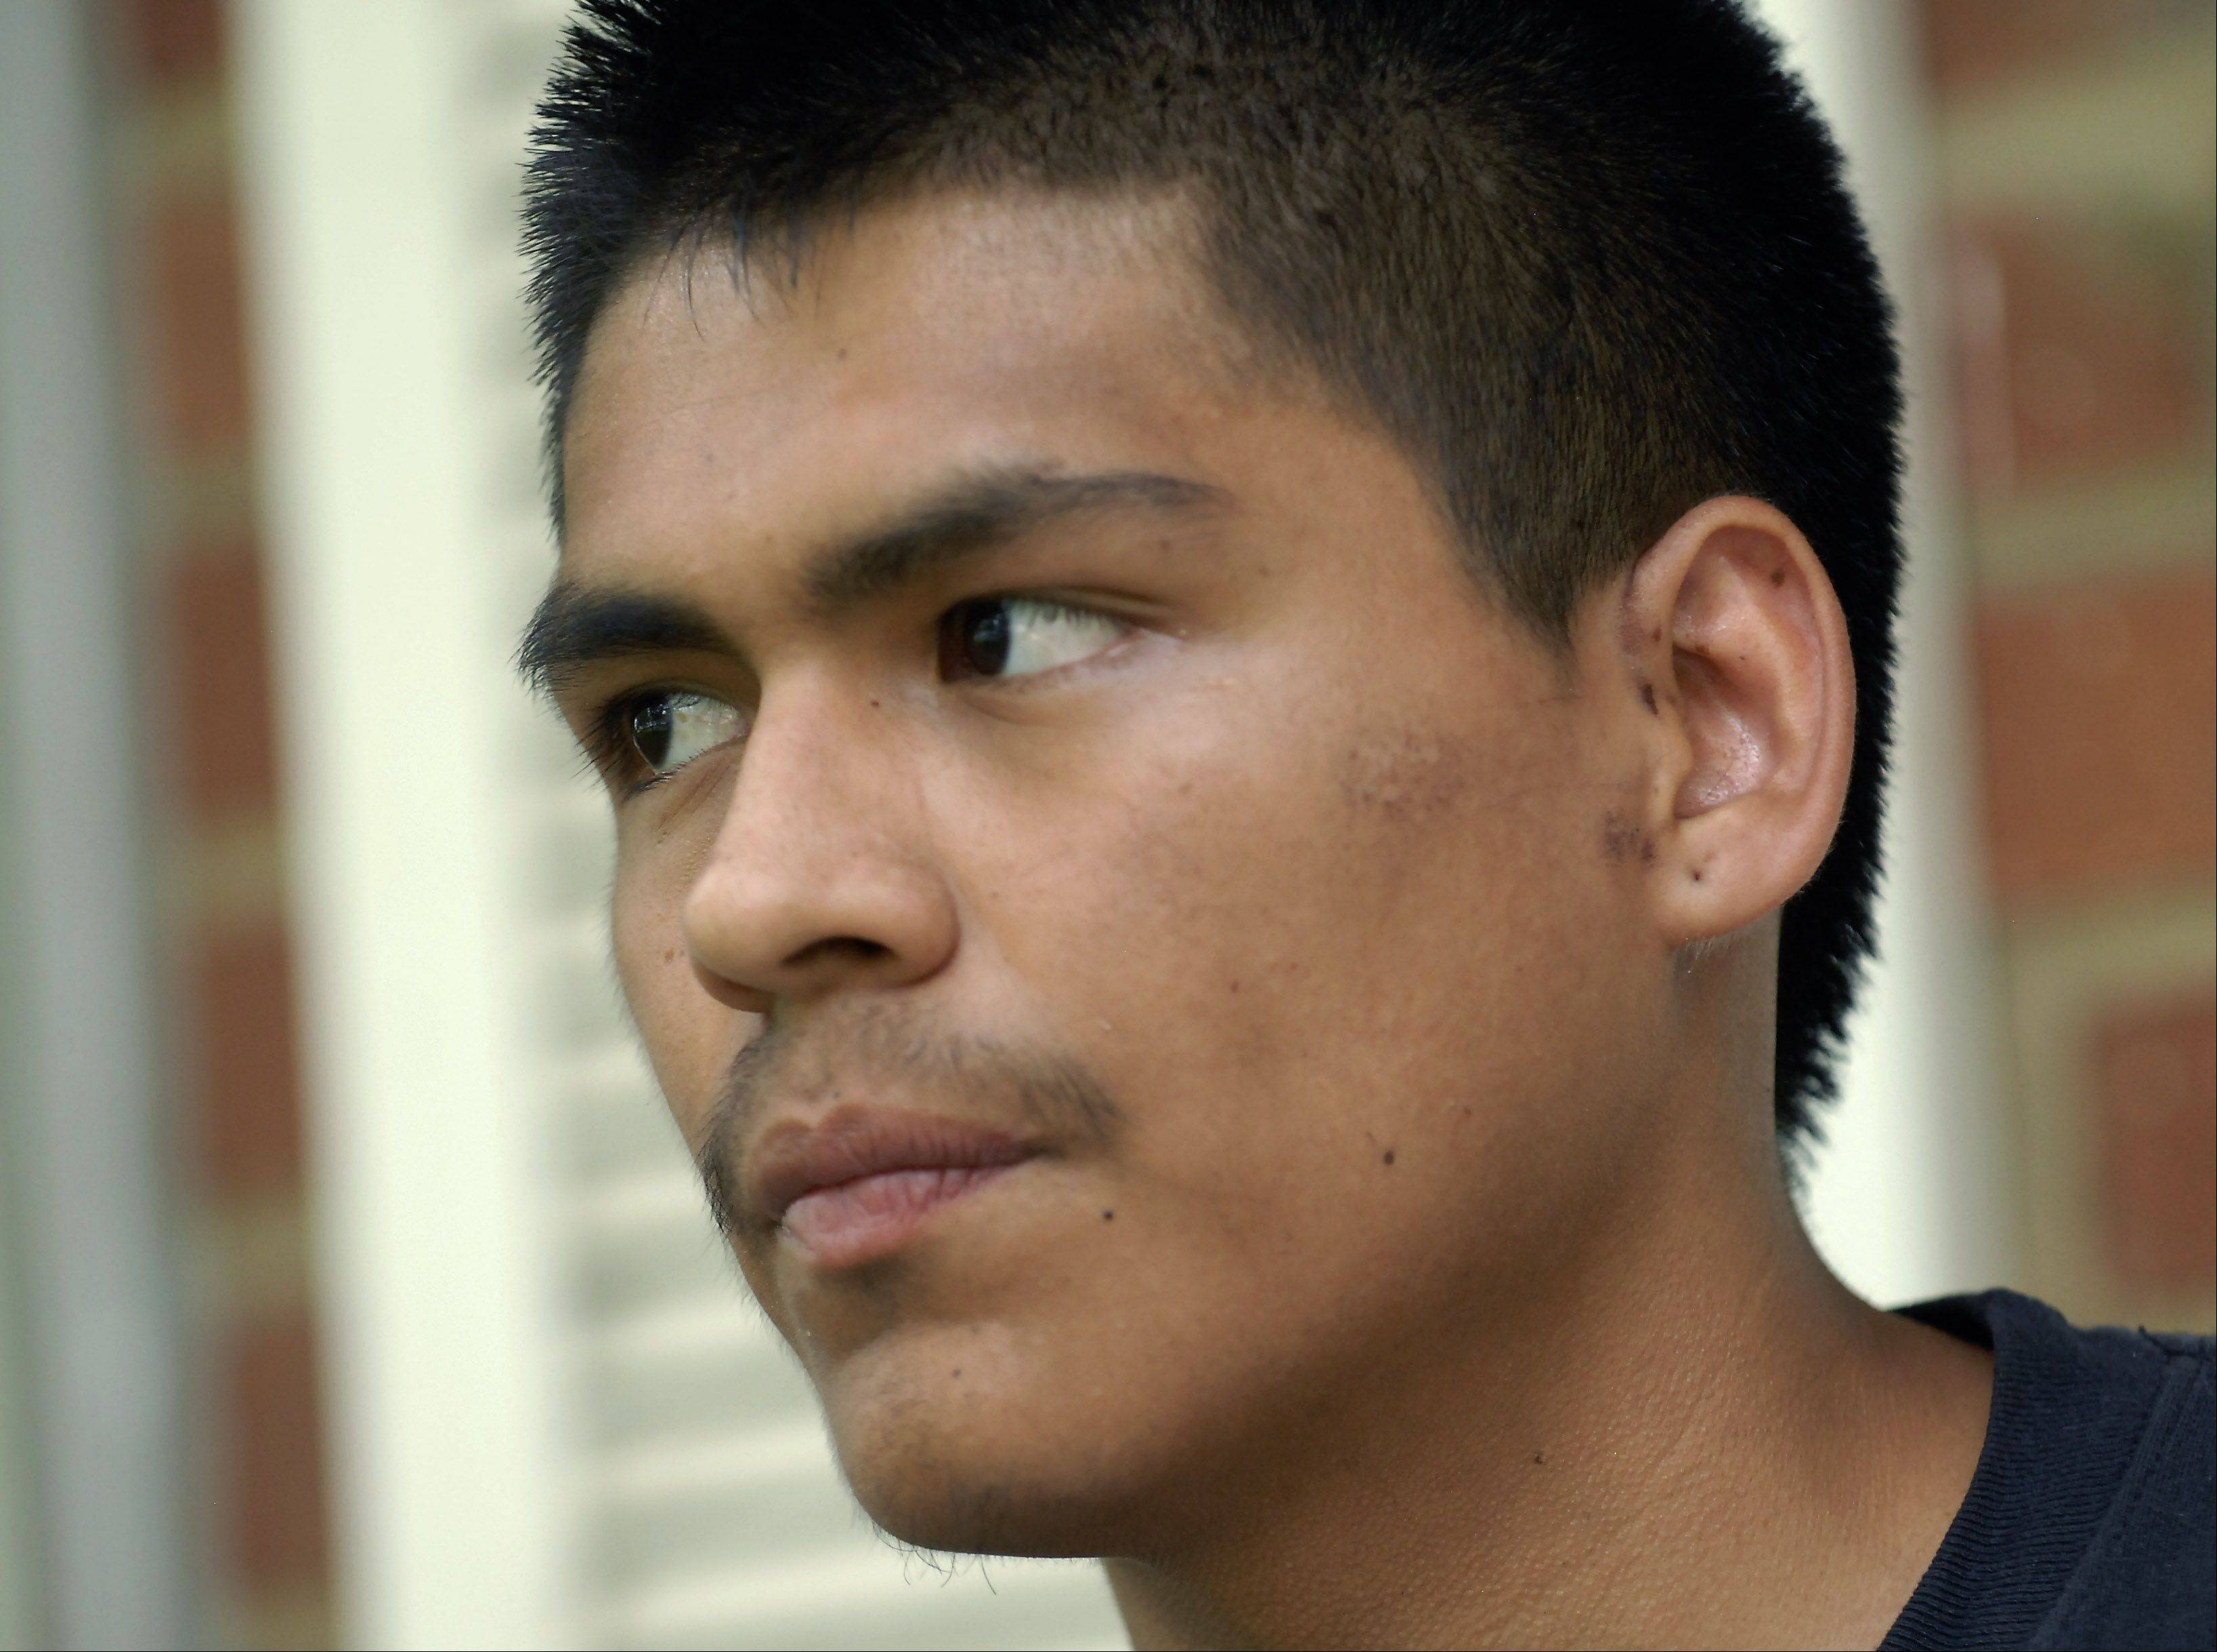 Daniel Ascencio 17 talks about the accident that took the lives of three of his friends and the fact that he survived.